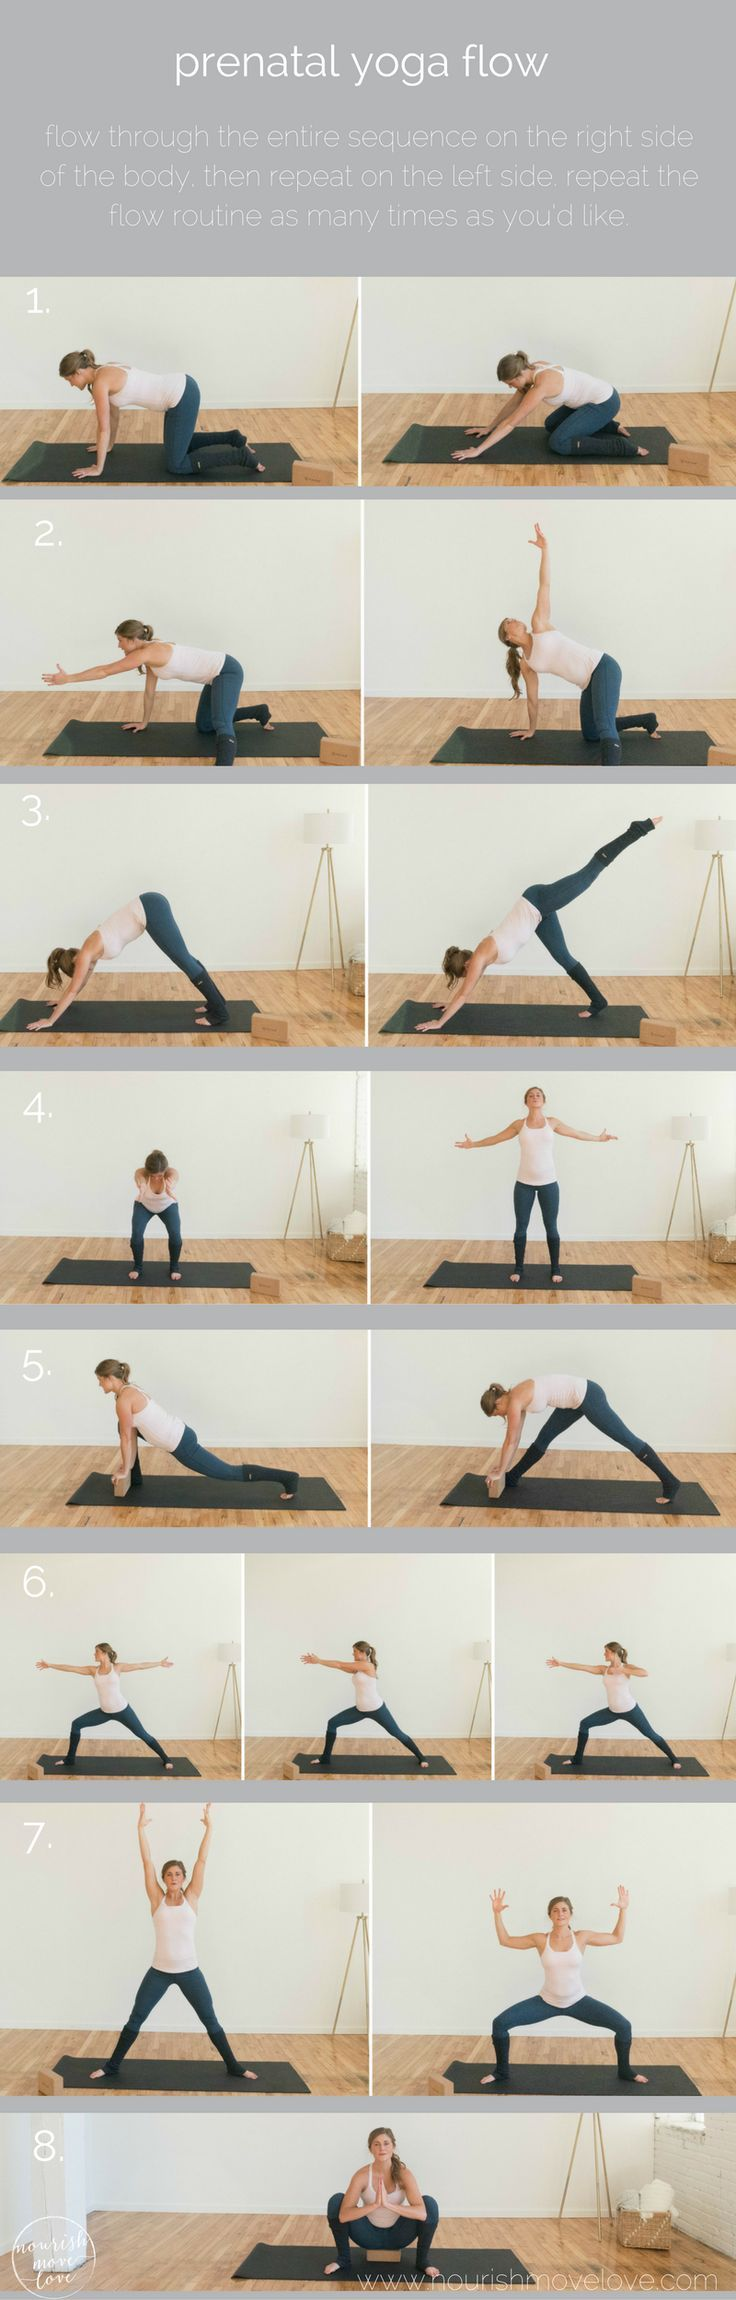 prenatal yoga flow: 8 best prenatal yoga exercises | nourish move love